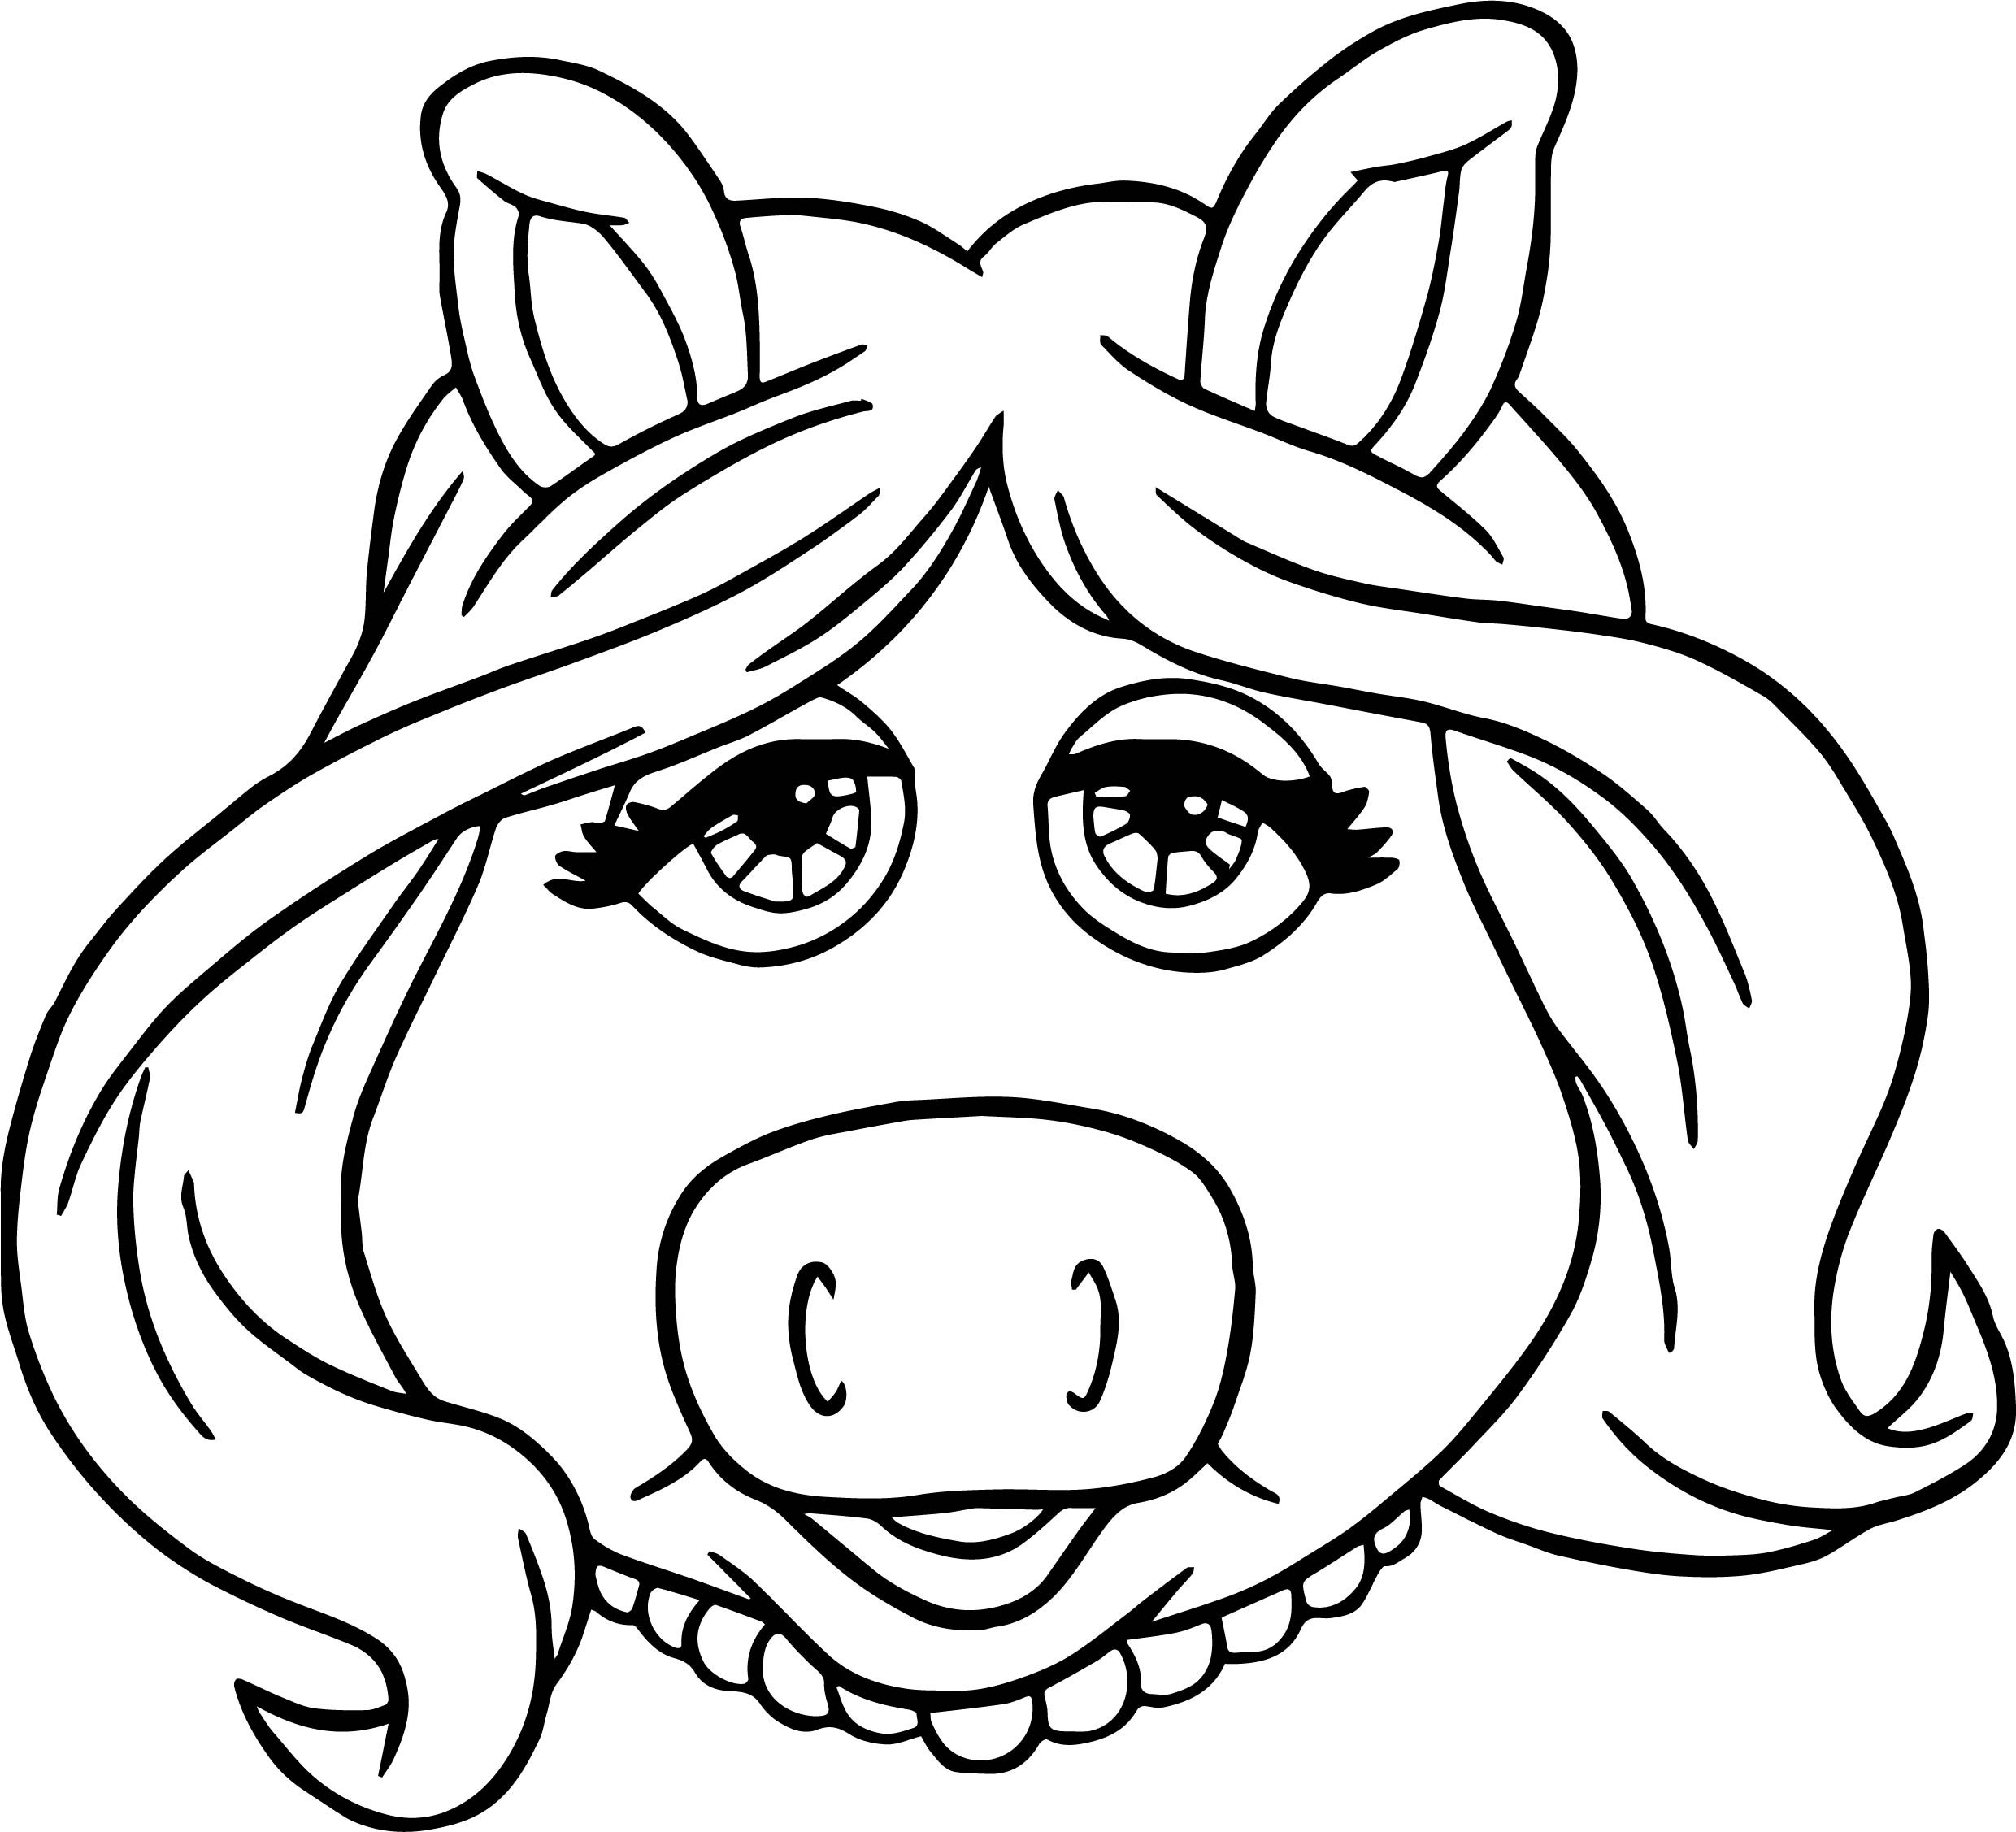 miss piggy coloring pages miss piggy free colouring pages coloring pages piggy miss